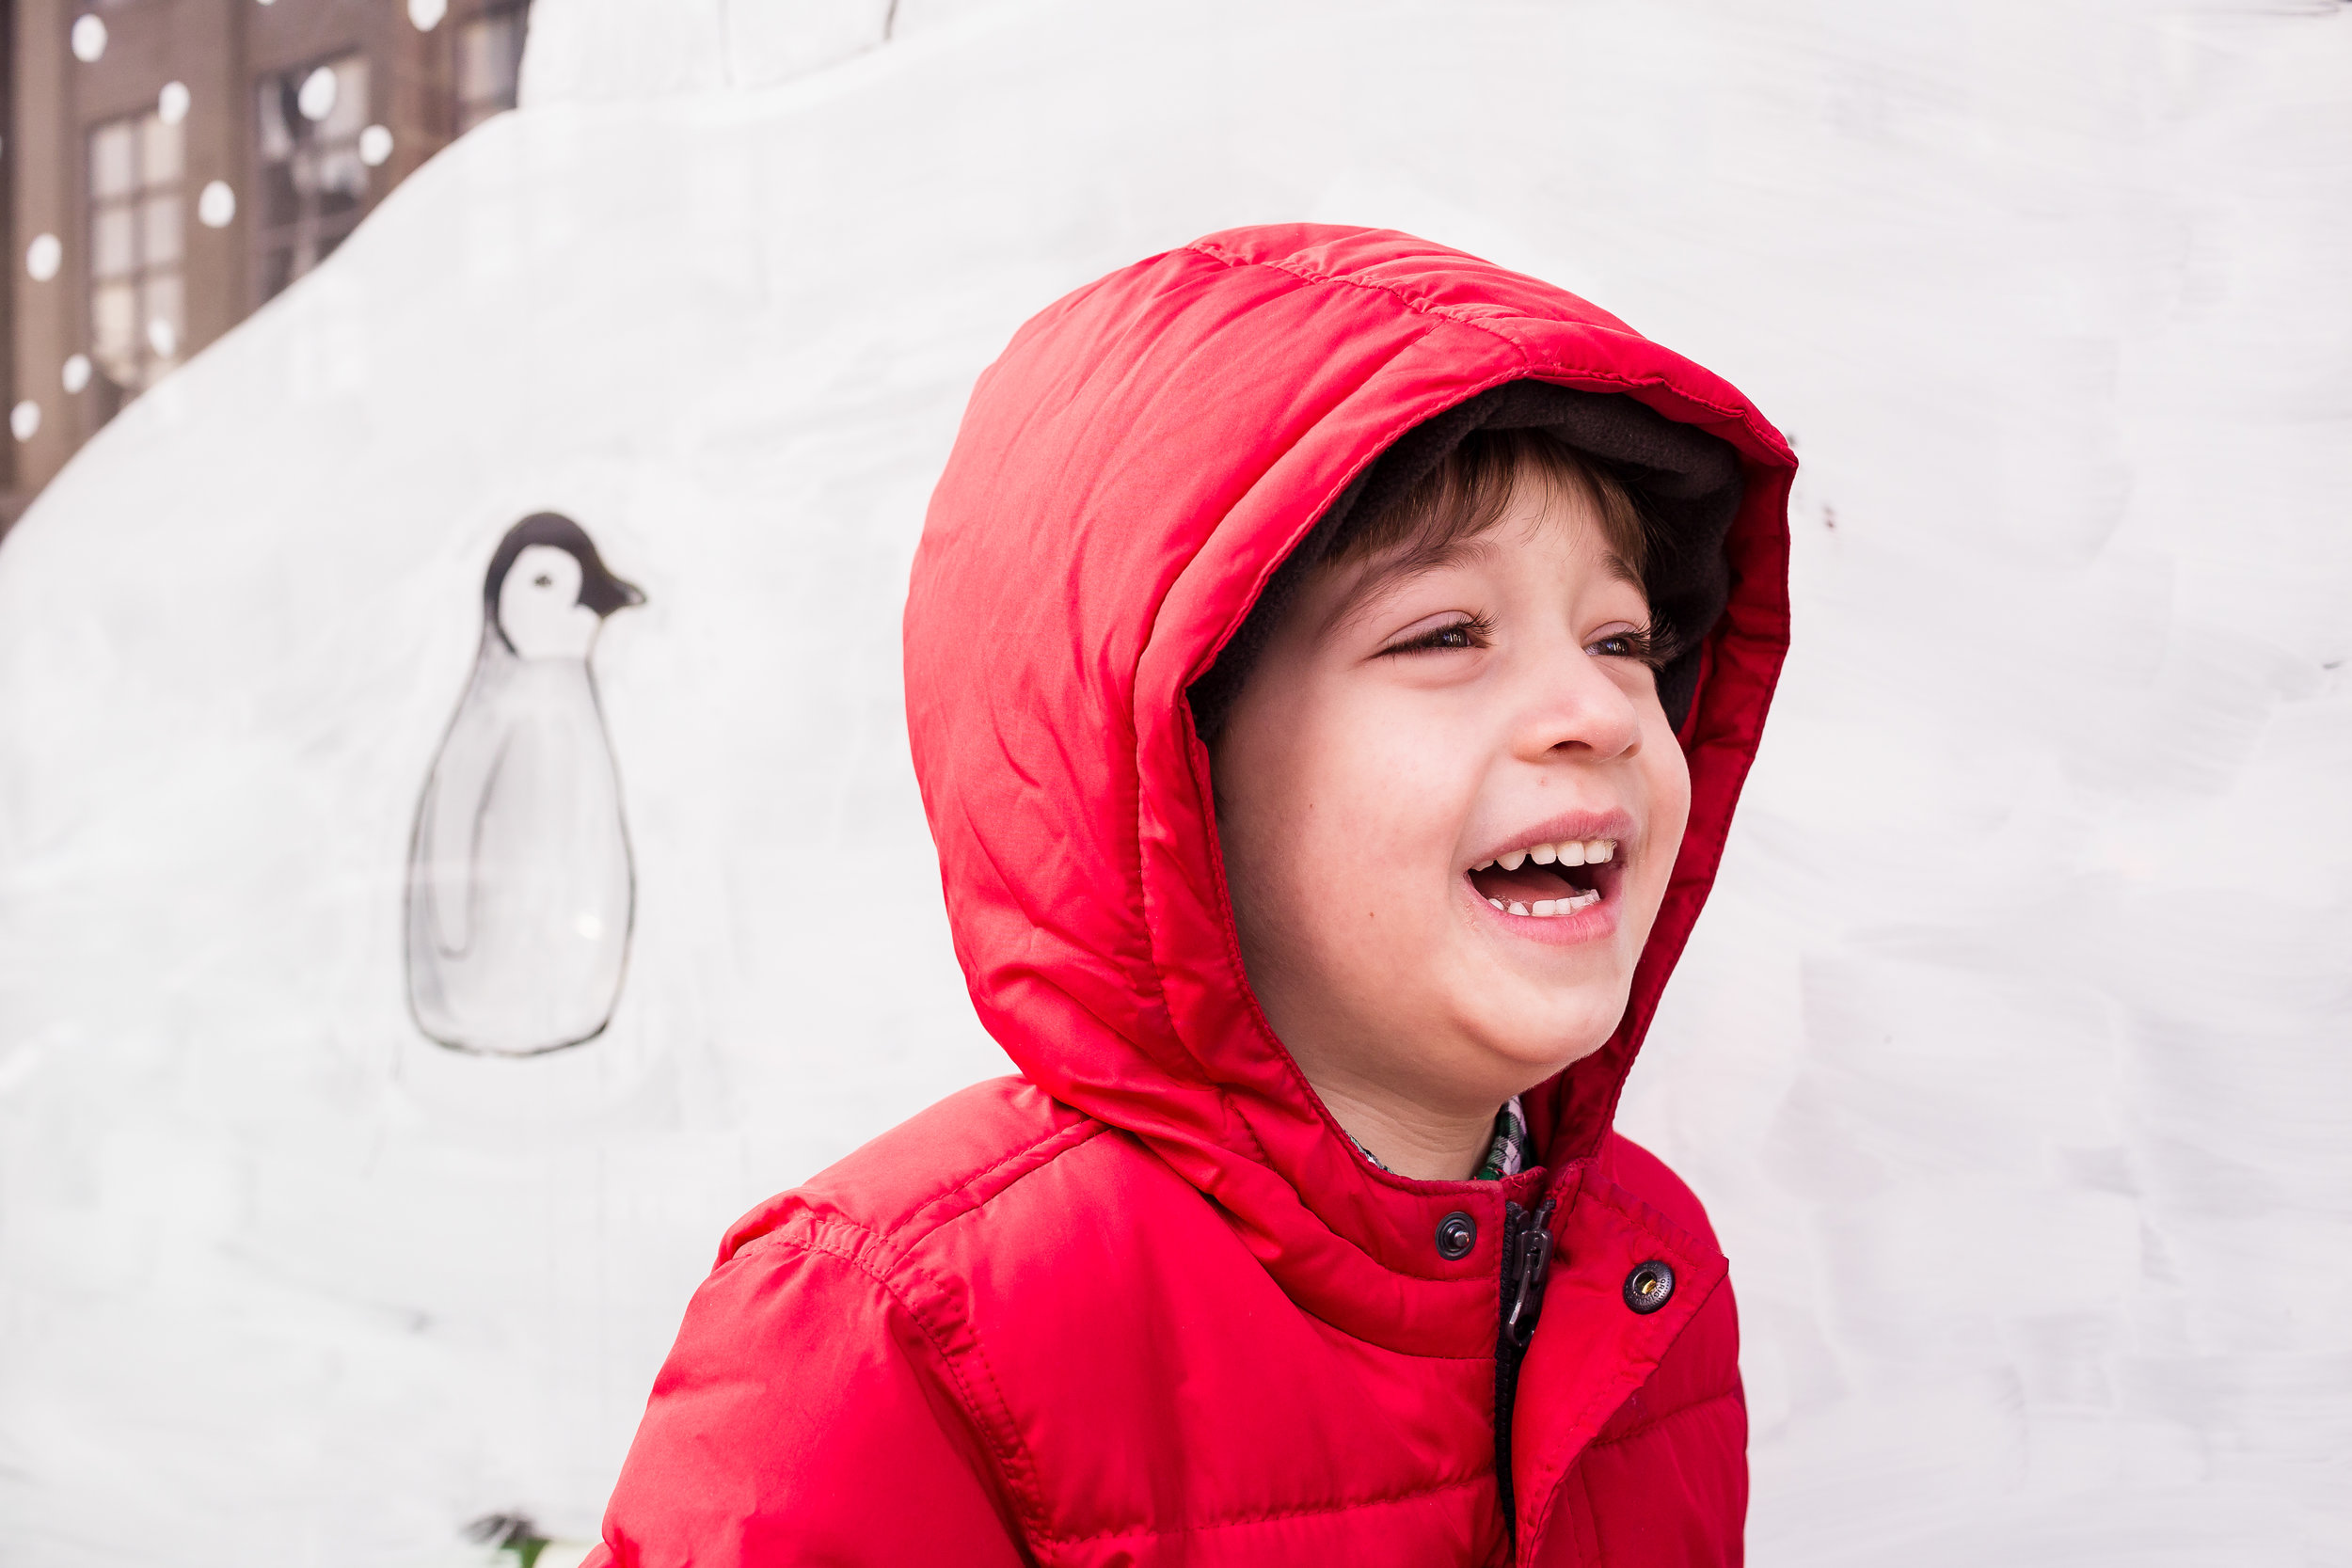 boy laughing in red coat